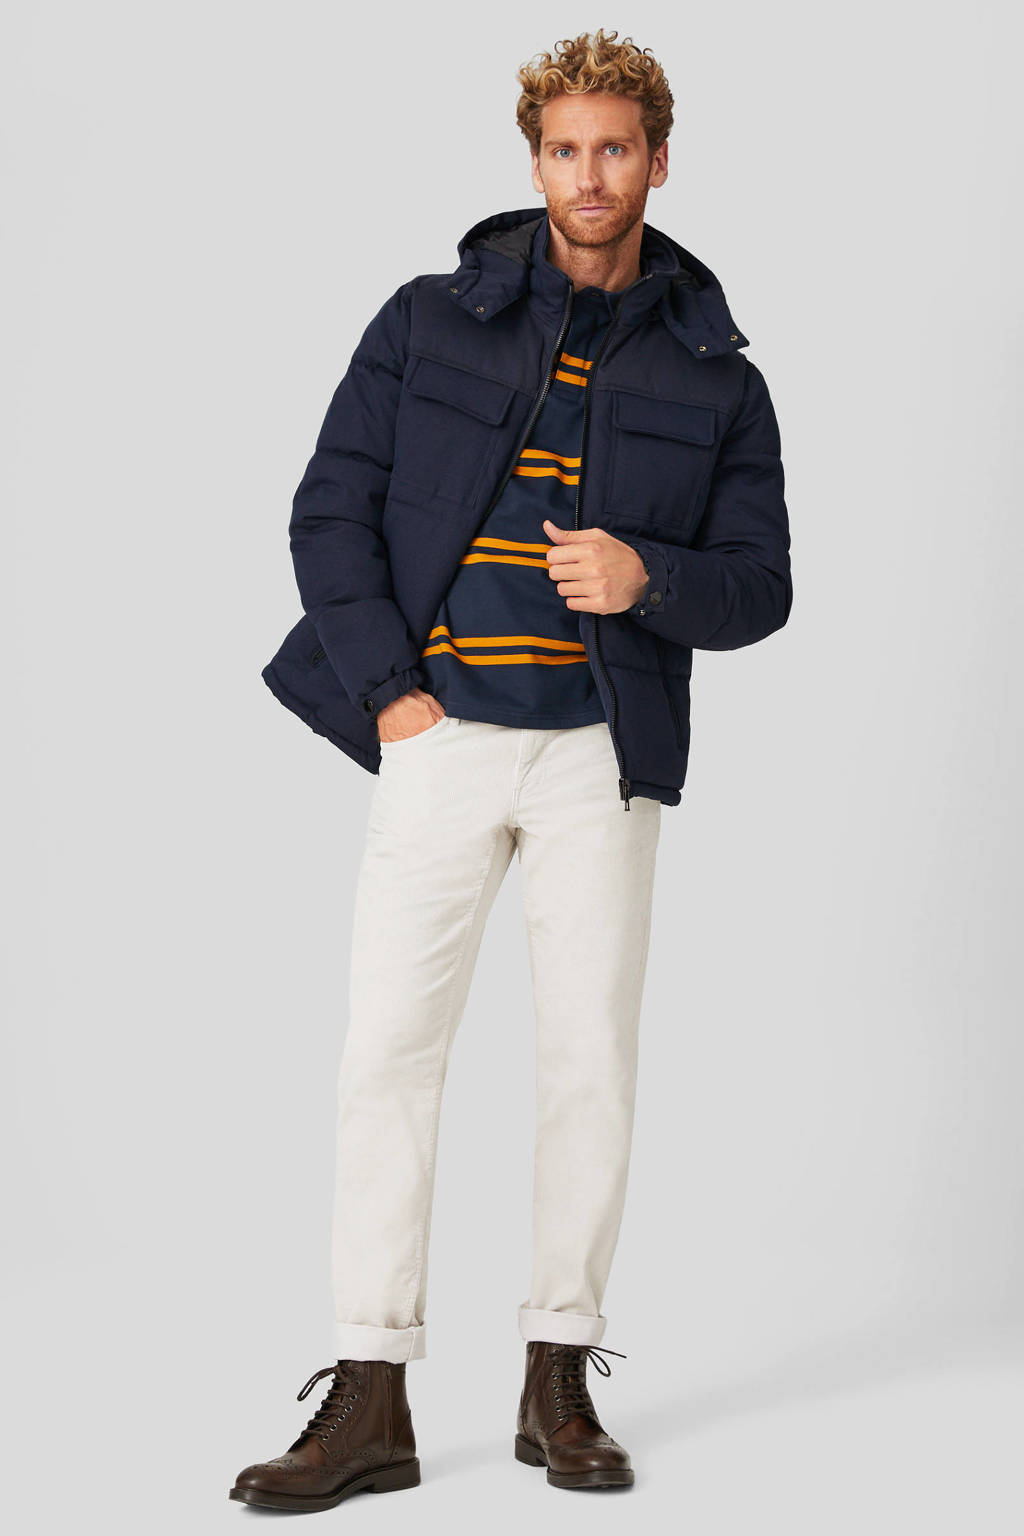 C&A Angelo Litrico  jas donkerblauw, Donkerblauw